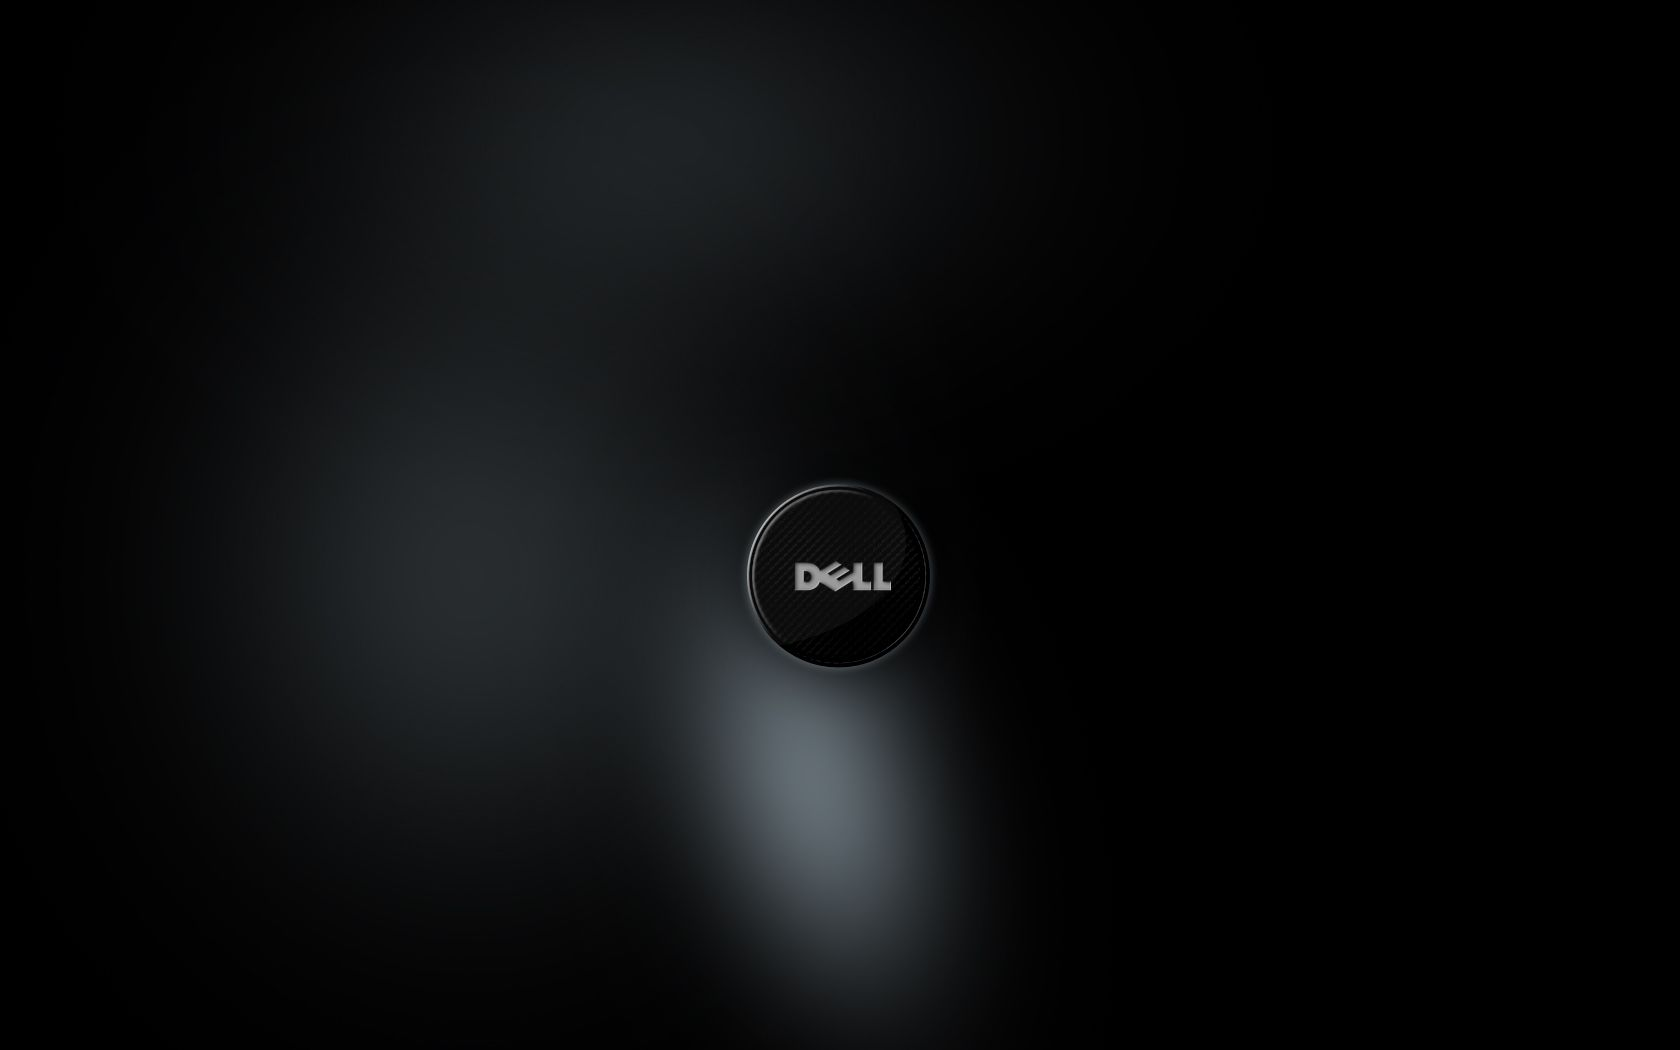 Dell Hd Wallpapers Posted By John Walker